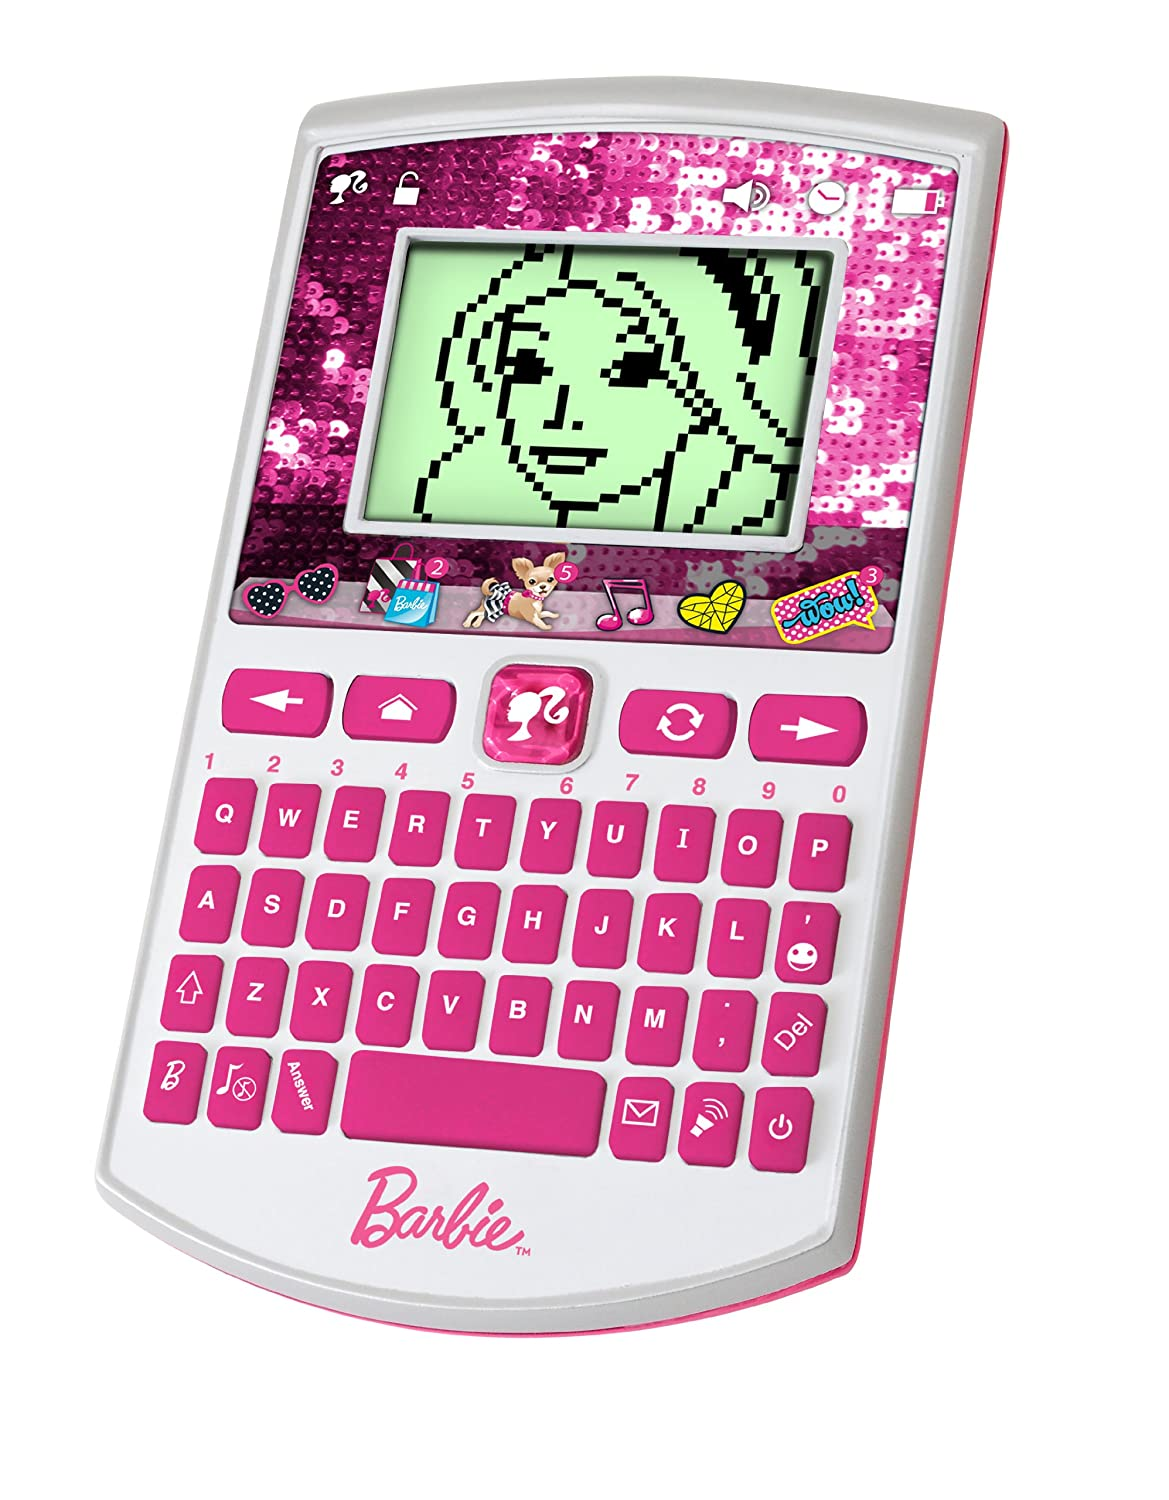 【当店限定販売】 Barbie Pocket Pocket Learner Barbie Learner B008PO7E98, BOOTSMAN:9aa1616e --- diceanalytics.pk